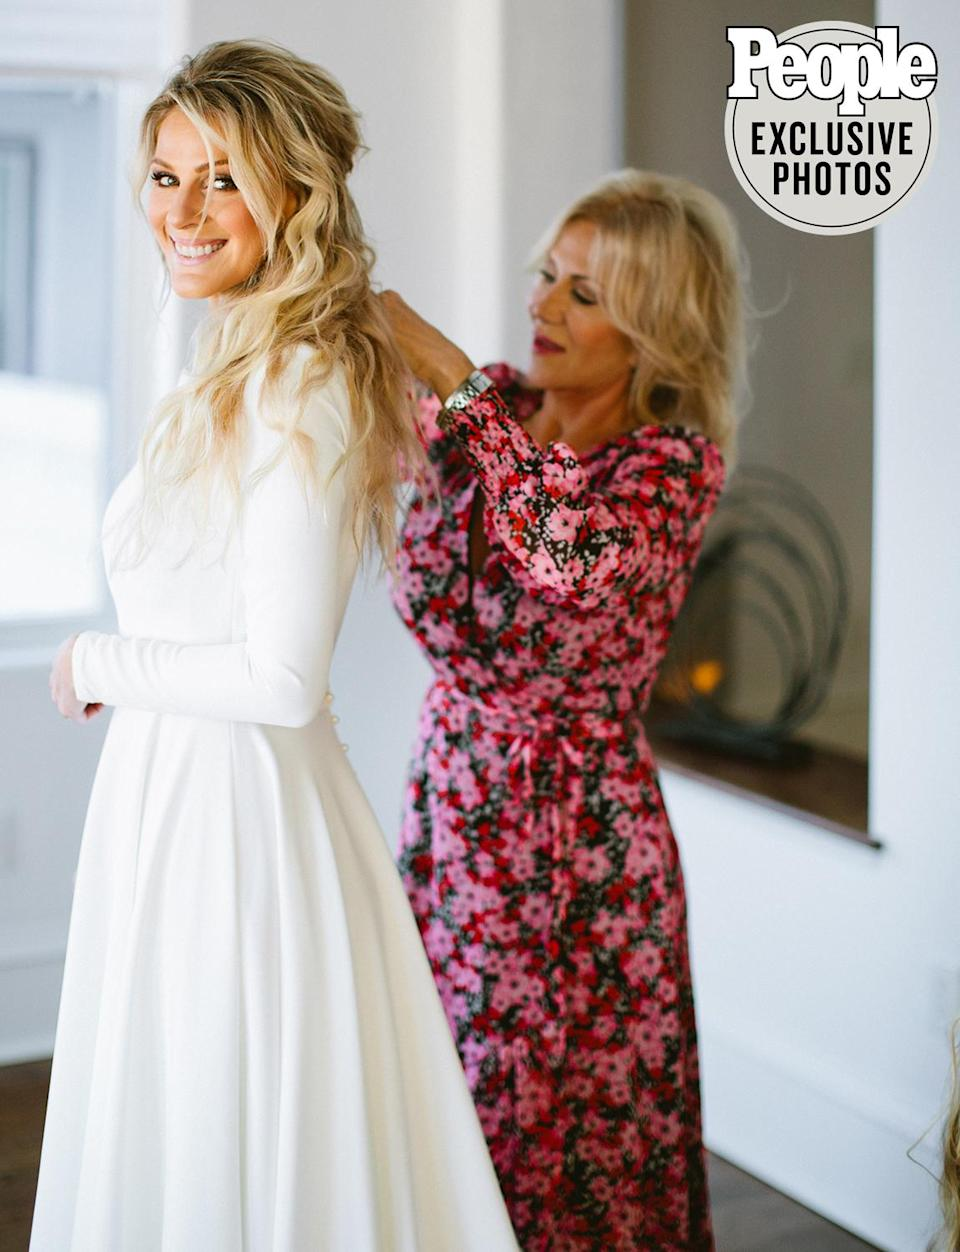 <p>Wayne's mom, actress Aissa Wayne, helped the bride-to-be with final touches ahead of the ceremony.</p>